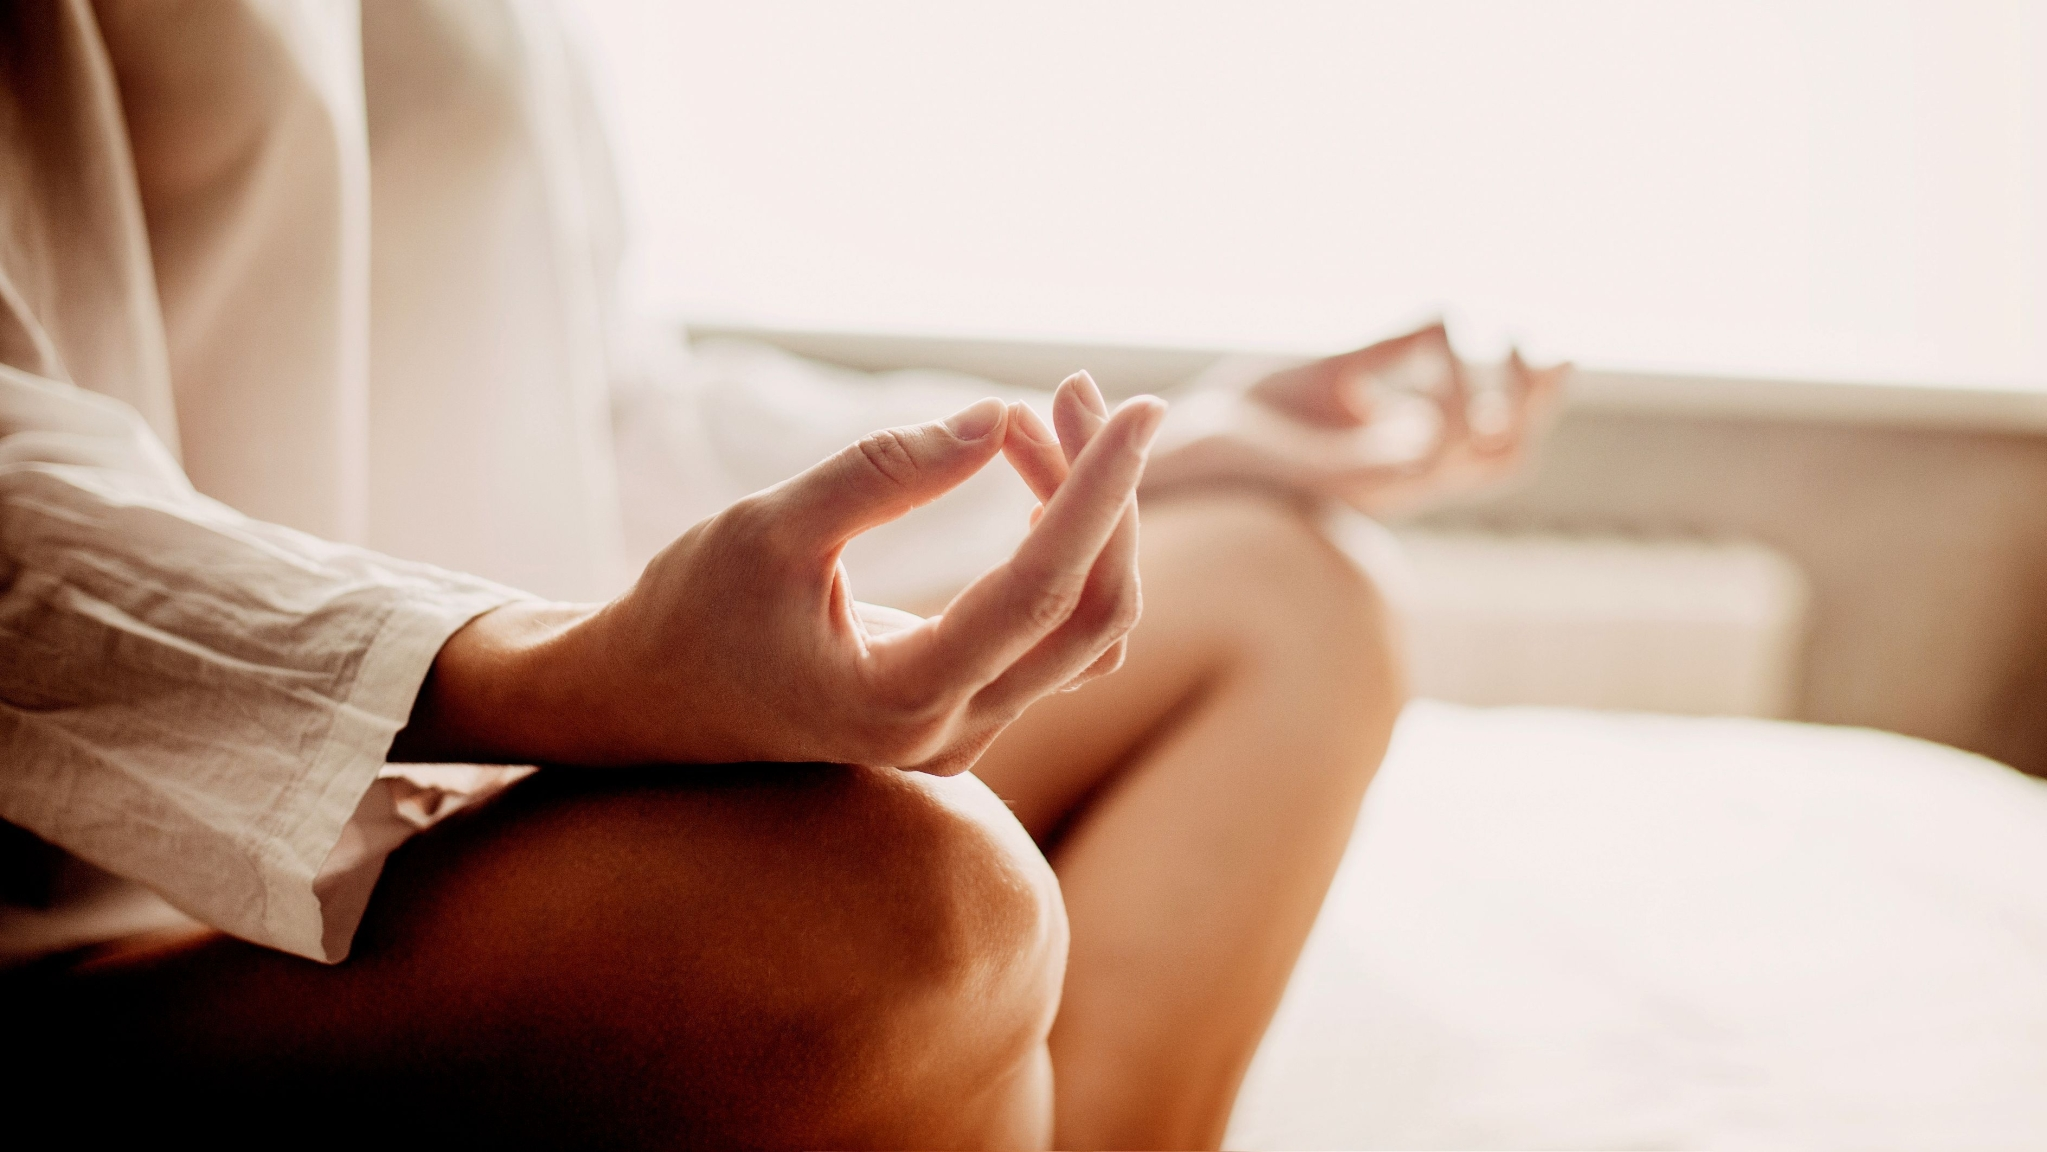 How to Start Meditation at Home: Follow These 8 Simple Steps